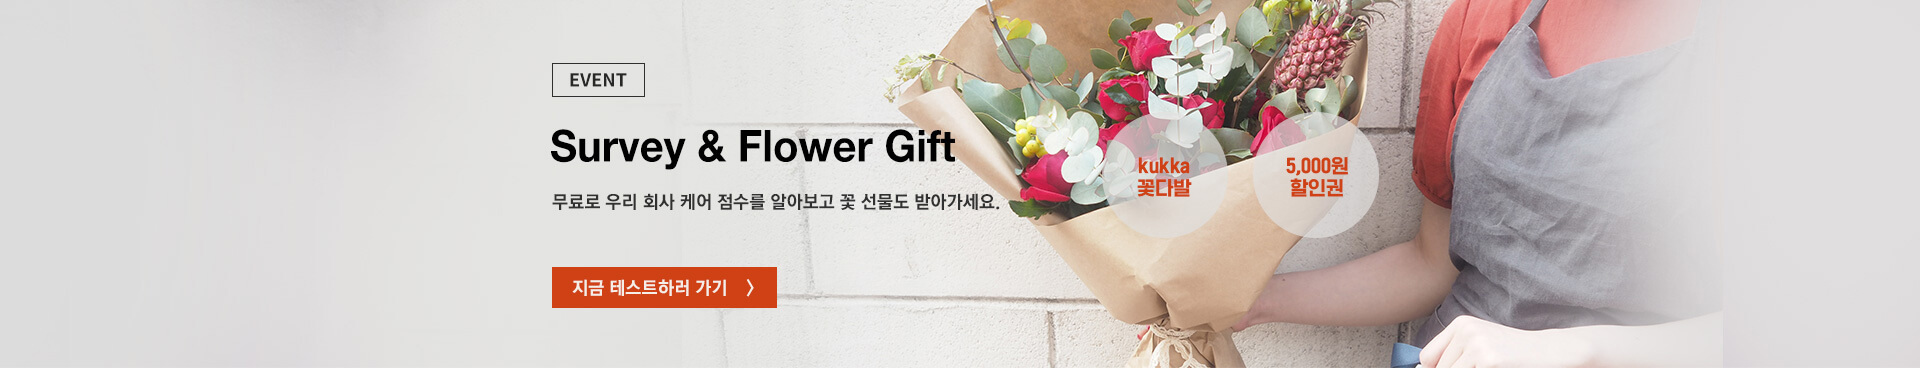 Survey & Flower Gift